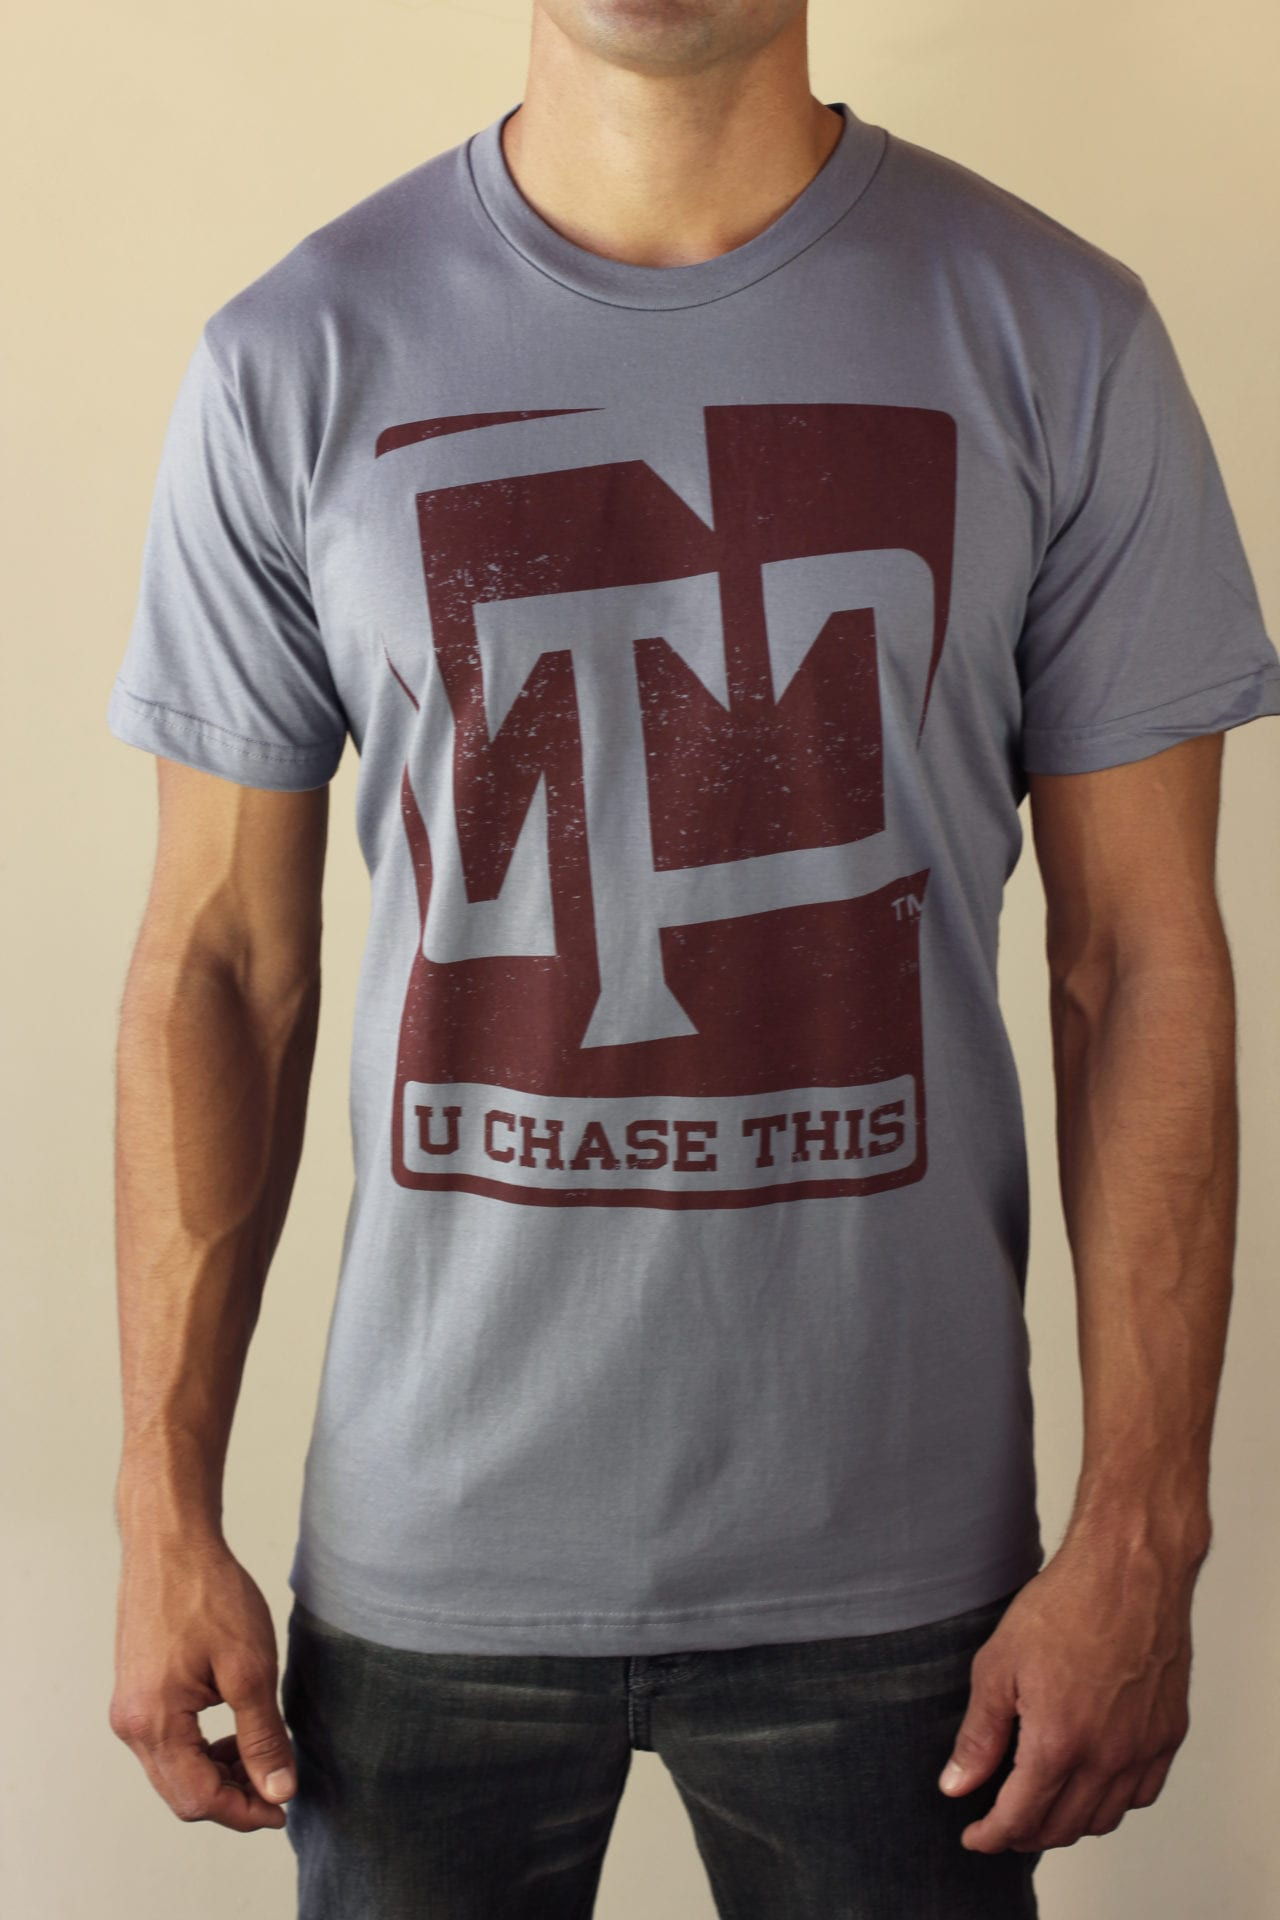 """A Canyon Creative work, the """"U Chase This"""" logo design on a t-shirt."""